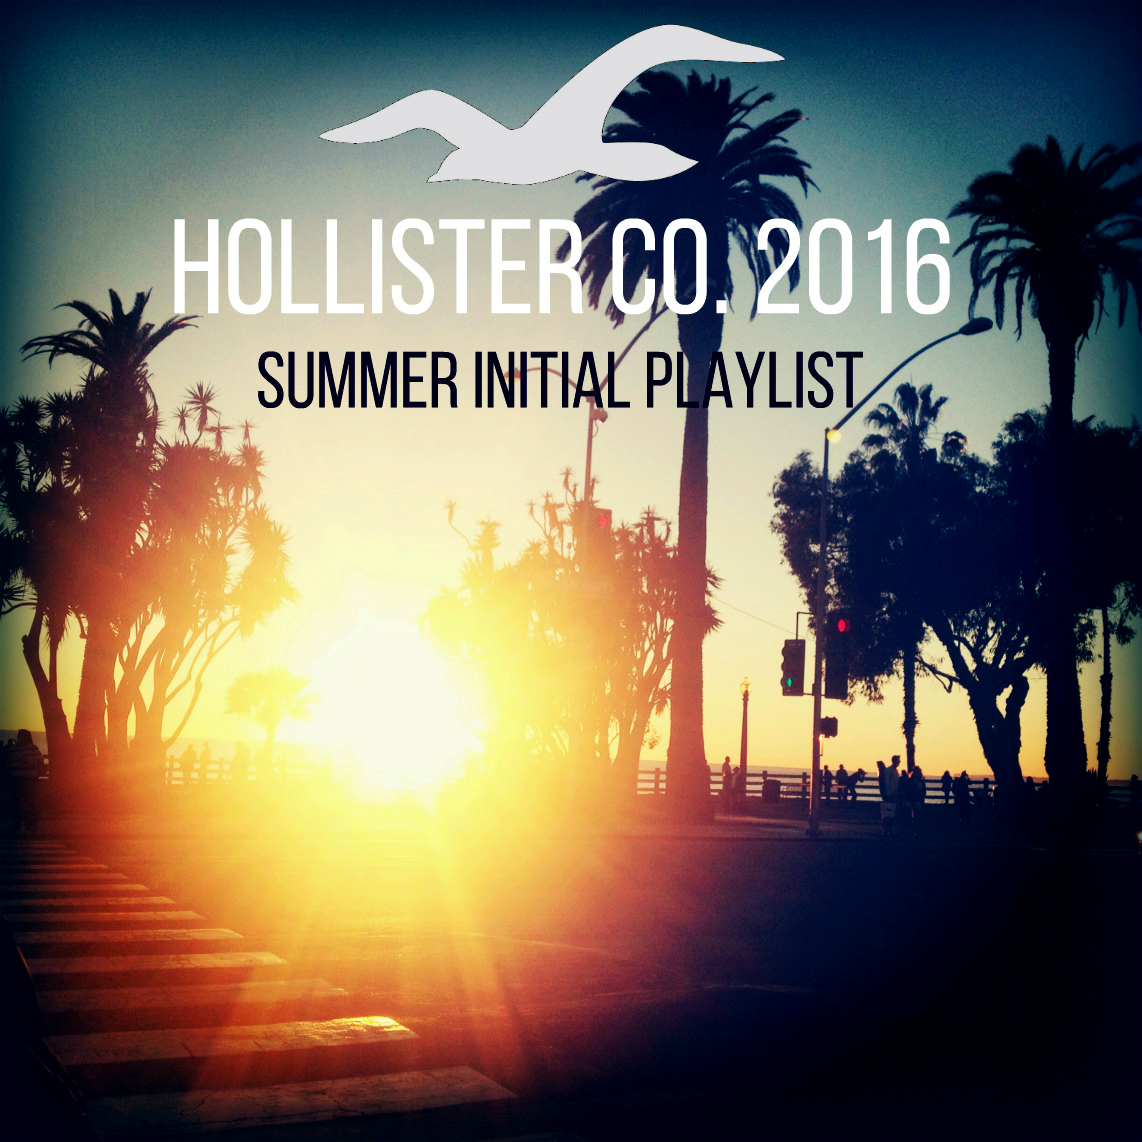 playlist for hollister 2013